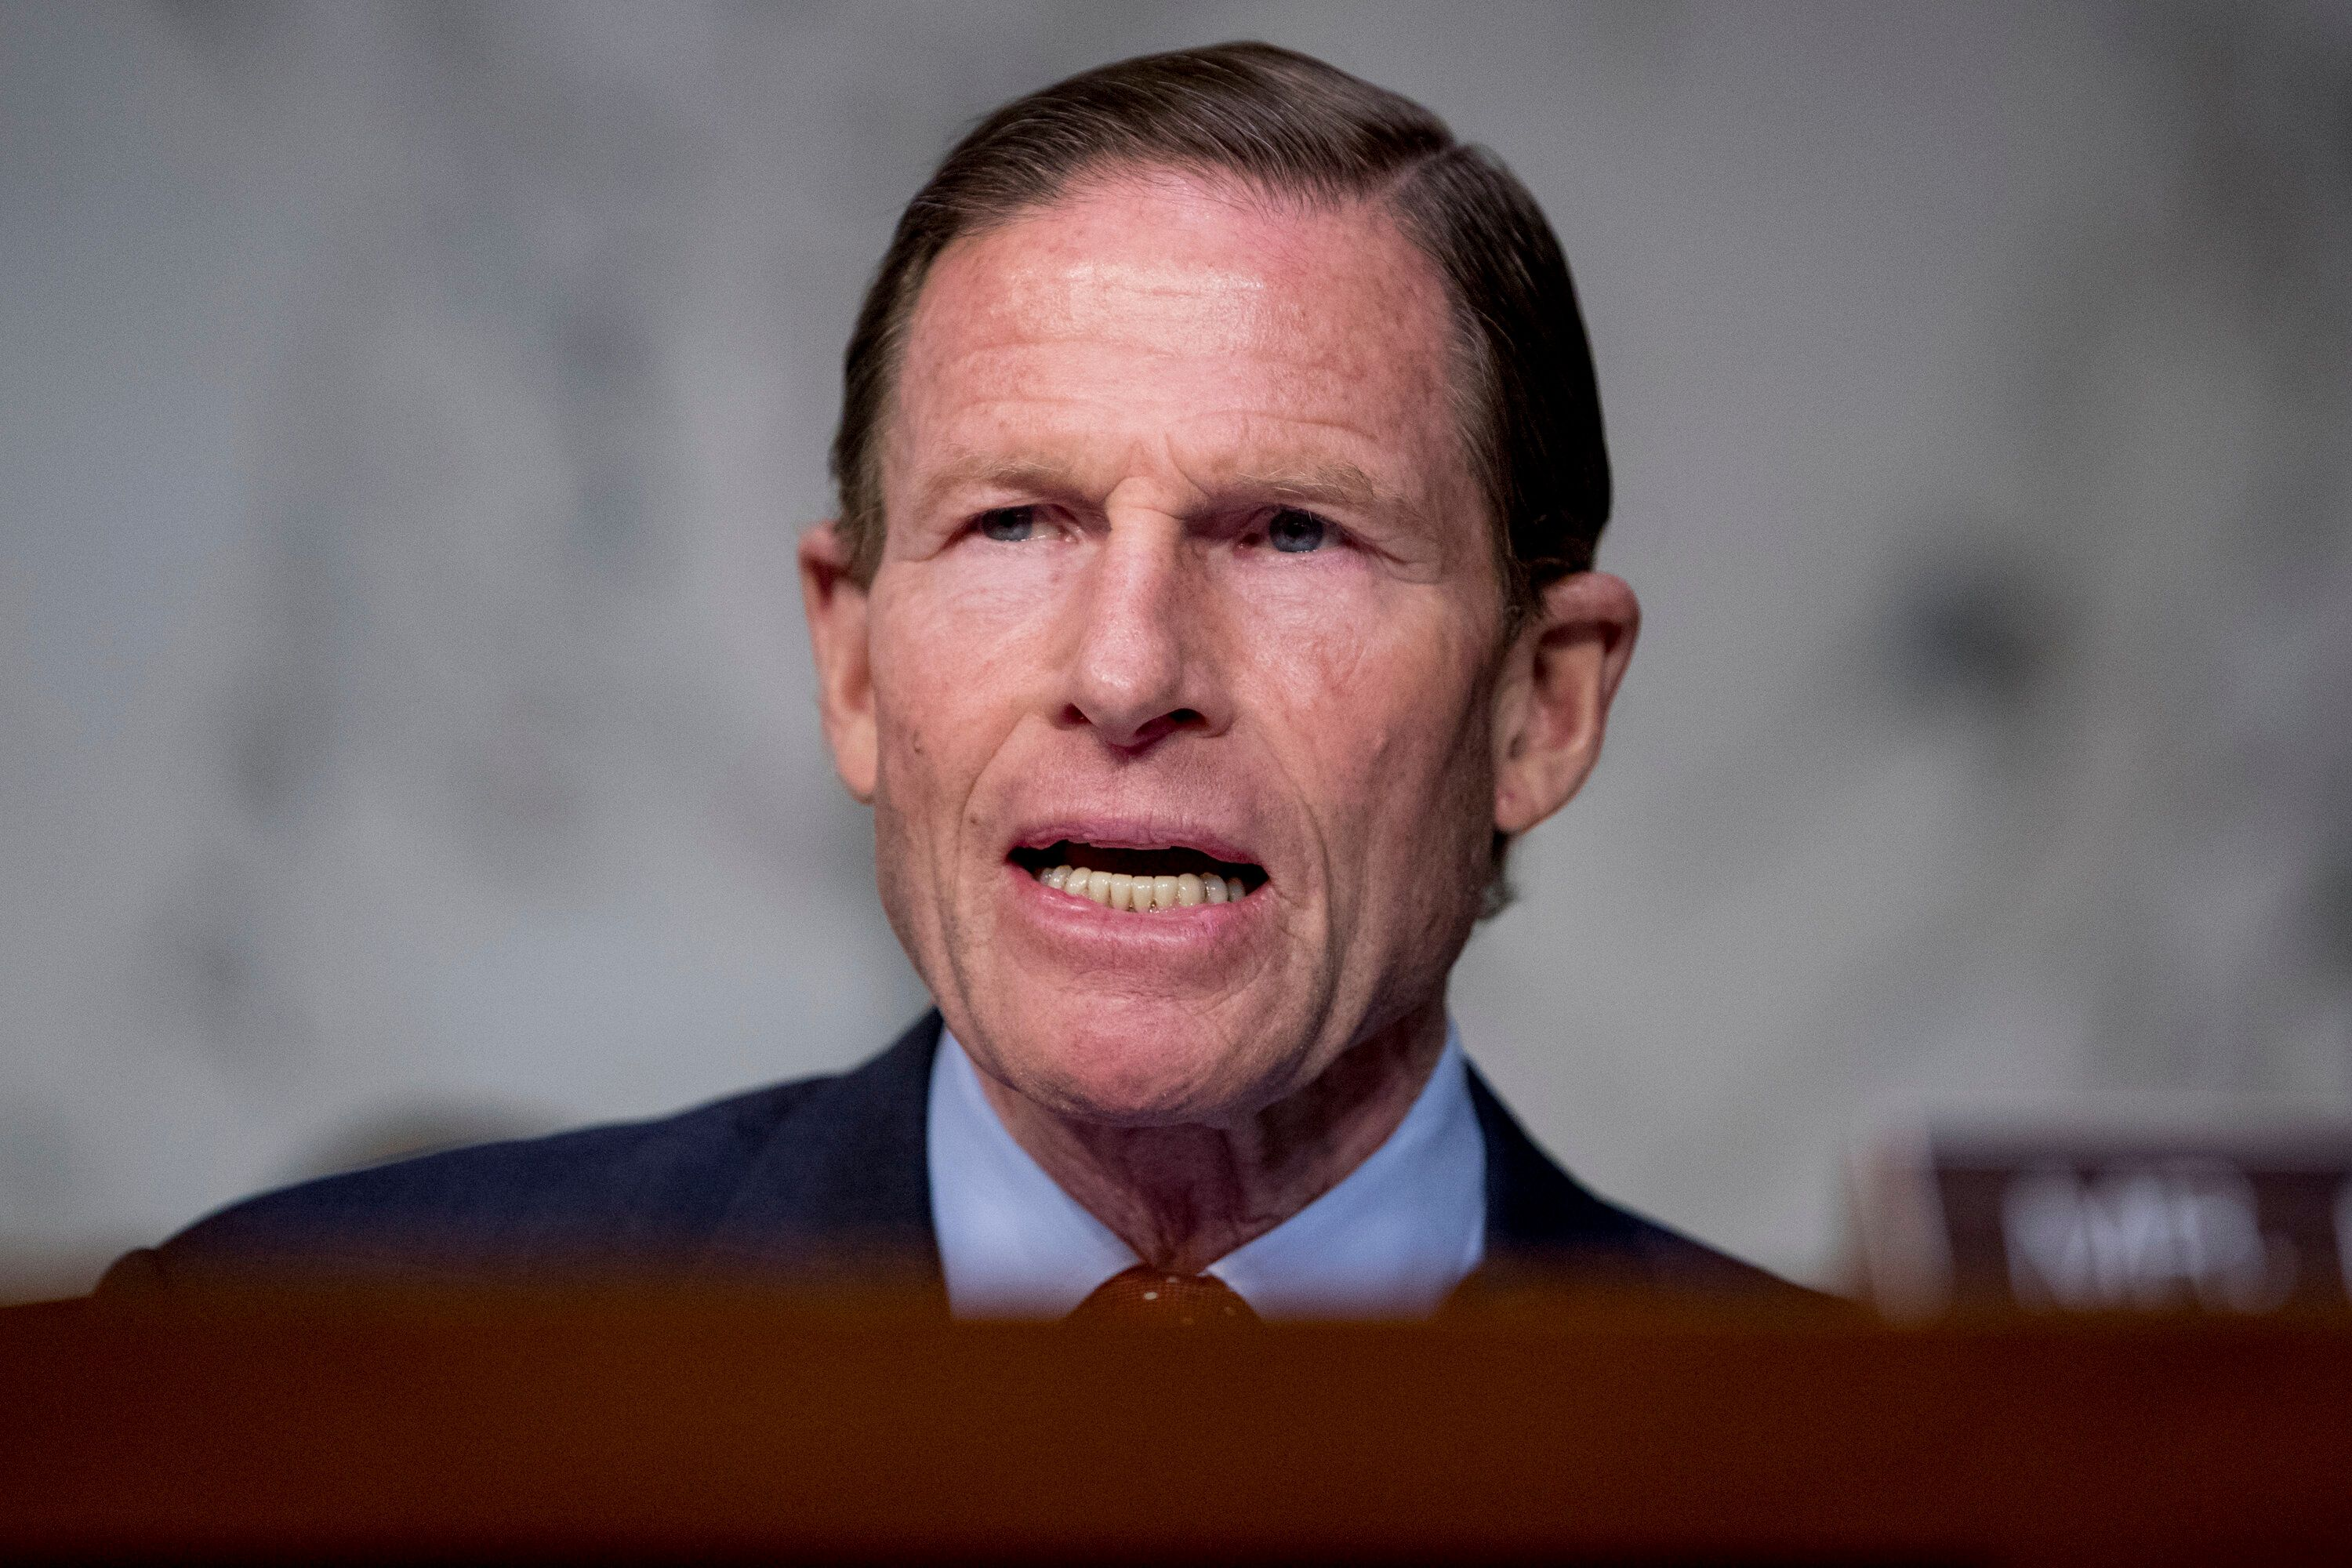 Sen. Richard Blumenthal, D-Conn., speaks as Federal Aviation Administration Acting Administrator Daniel Elwell, National Transportation Safety Board Chairman Robert Sumwalt, and Department of Transportation Inspector General Calvin Scovel appear before a Senate Transportation subcommittee hearing on commercial airline safety, on Capitol Hill, Wednesday, March 27, 2019, in Washington. Two recent Boeing 737 MAX crashes, in Ethiopia and Indonesia, which killed nearly 350 people, have lead to the temporary grounding of models of the aircraft and to increased scrutiny of the FAA's delegation of a number of aspects of the certification process to the aircraft manufacturers themselves. (AP Photo/Andrew Harnik)